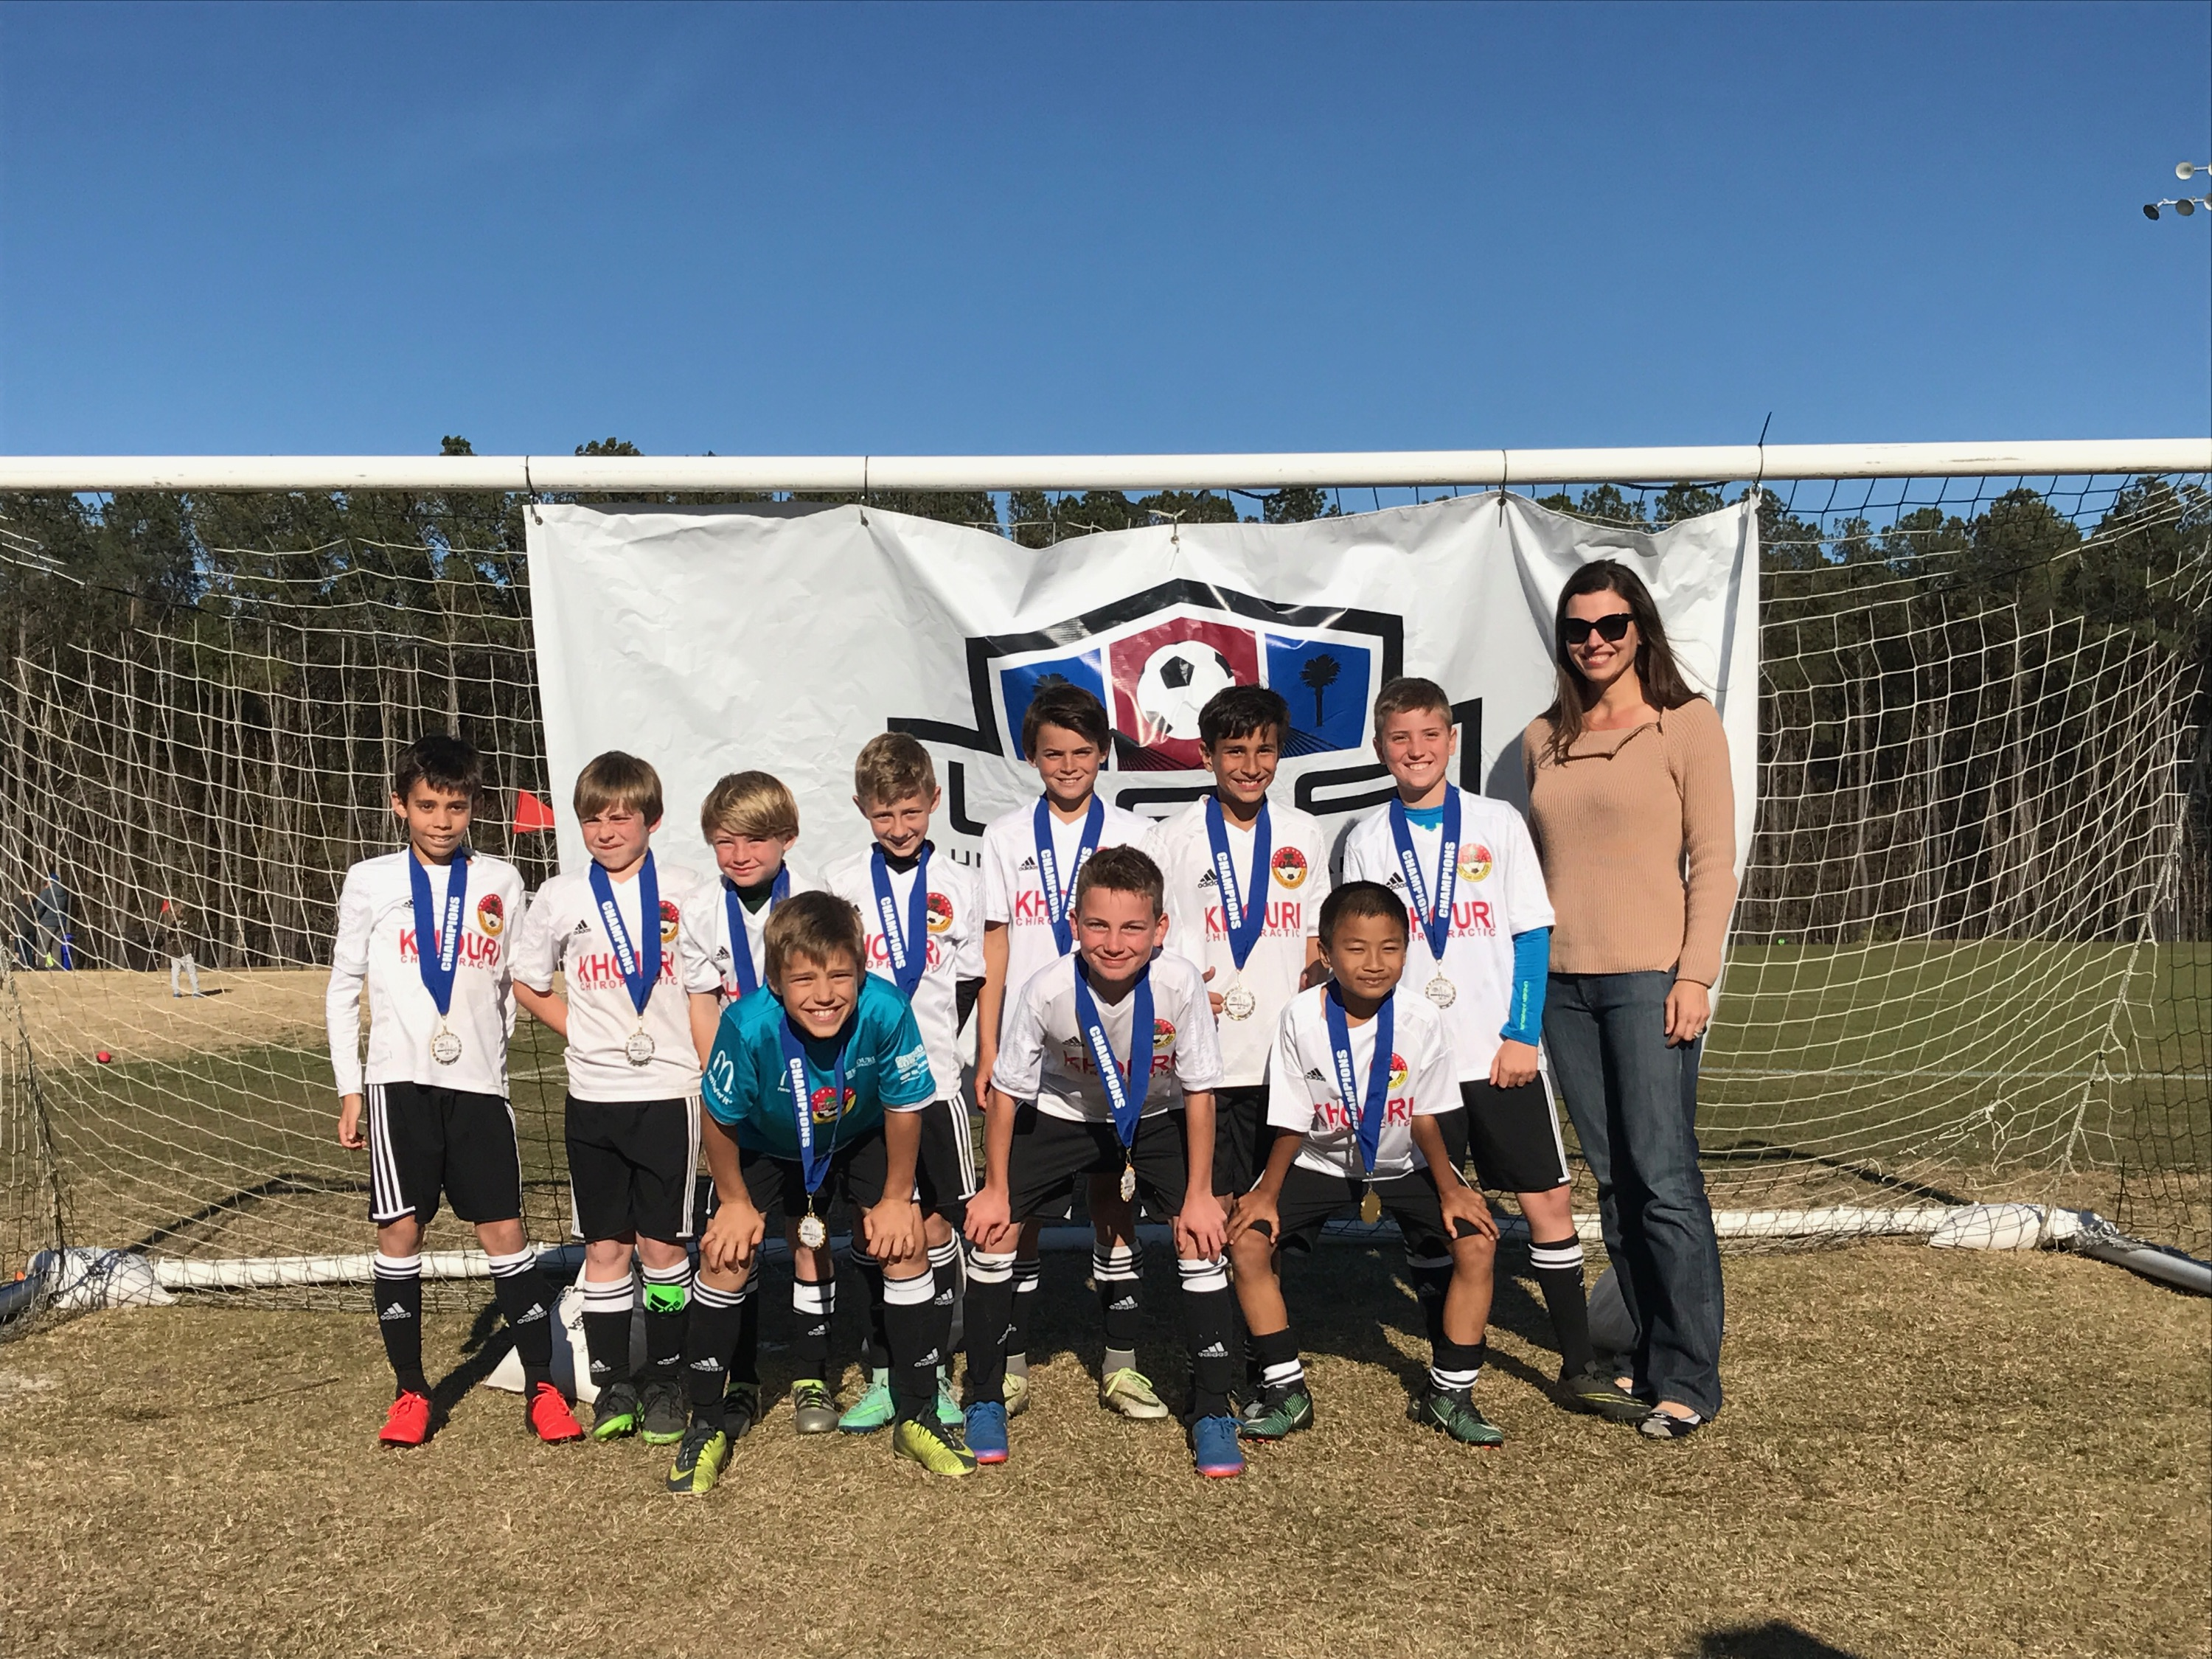 U11 Ajax (DISA) First Row: Aidan Lentsch, Jimmy Wenger, and Arkar Oo. Back row: Gabe Conlin, Chris Dubis, Levi Evans, Carter Gregory, Weston Coggeshall, Easton Khouri, Evans Baker, and Team Manager Kristi Lentsch.